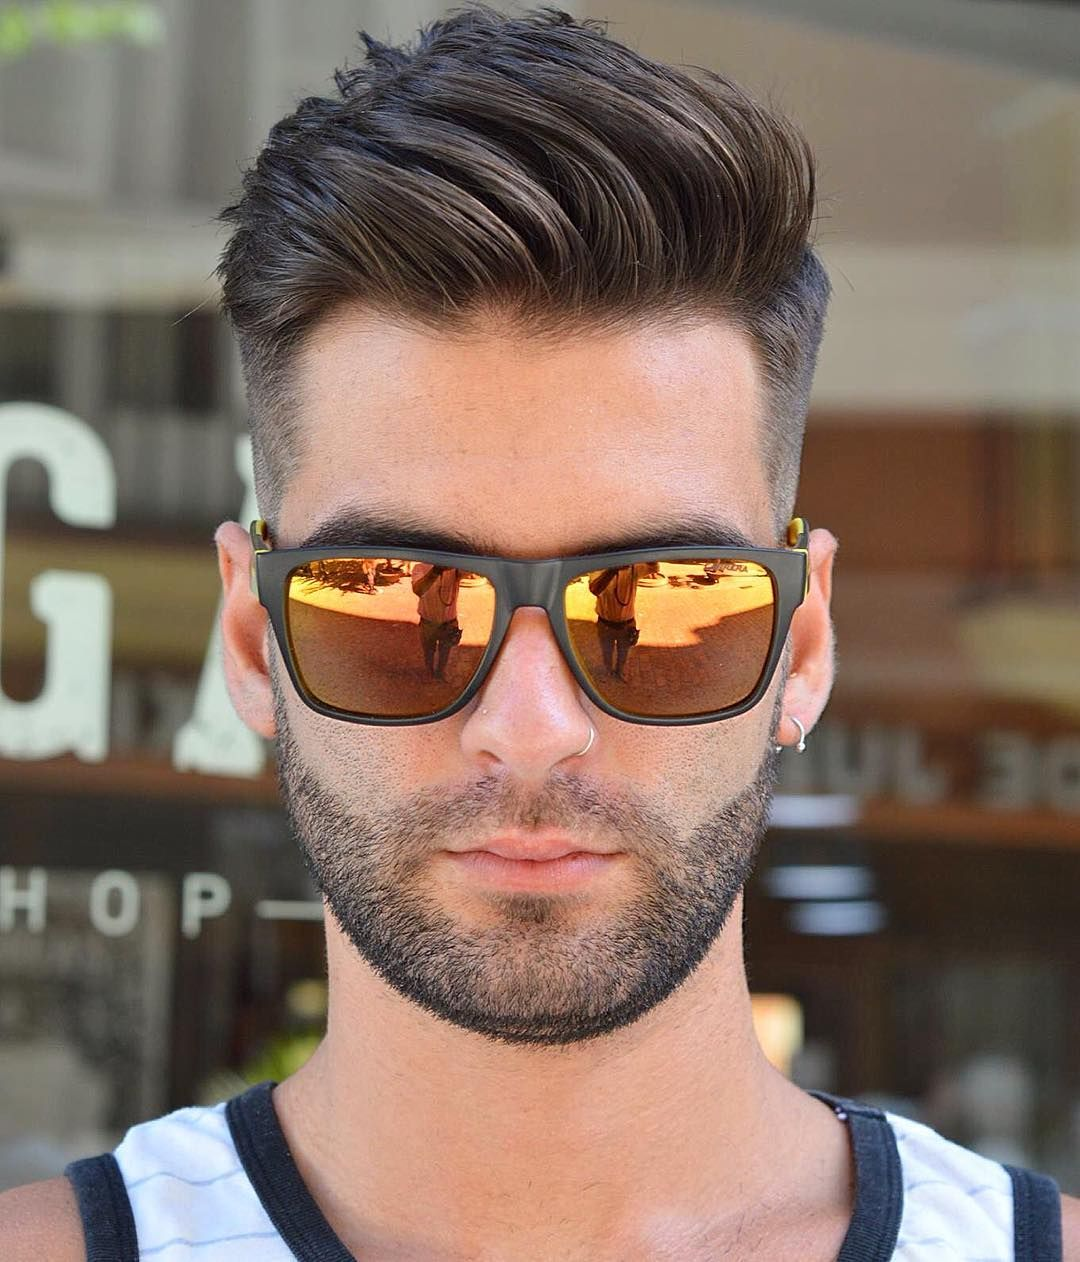 New Hairstyle Magnificent 100 New Men's Hairstyles For 2018 Top Picks  Haircuts Hair